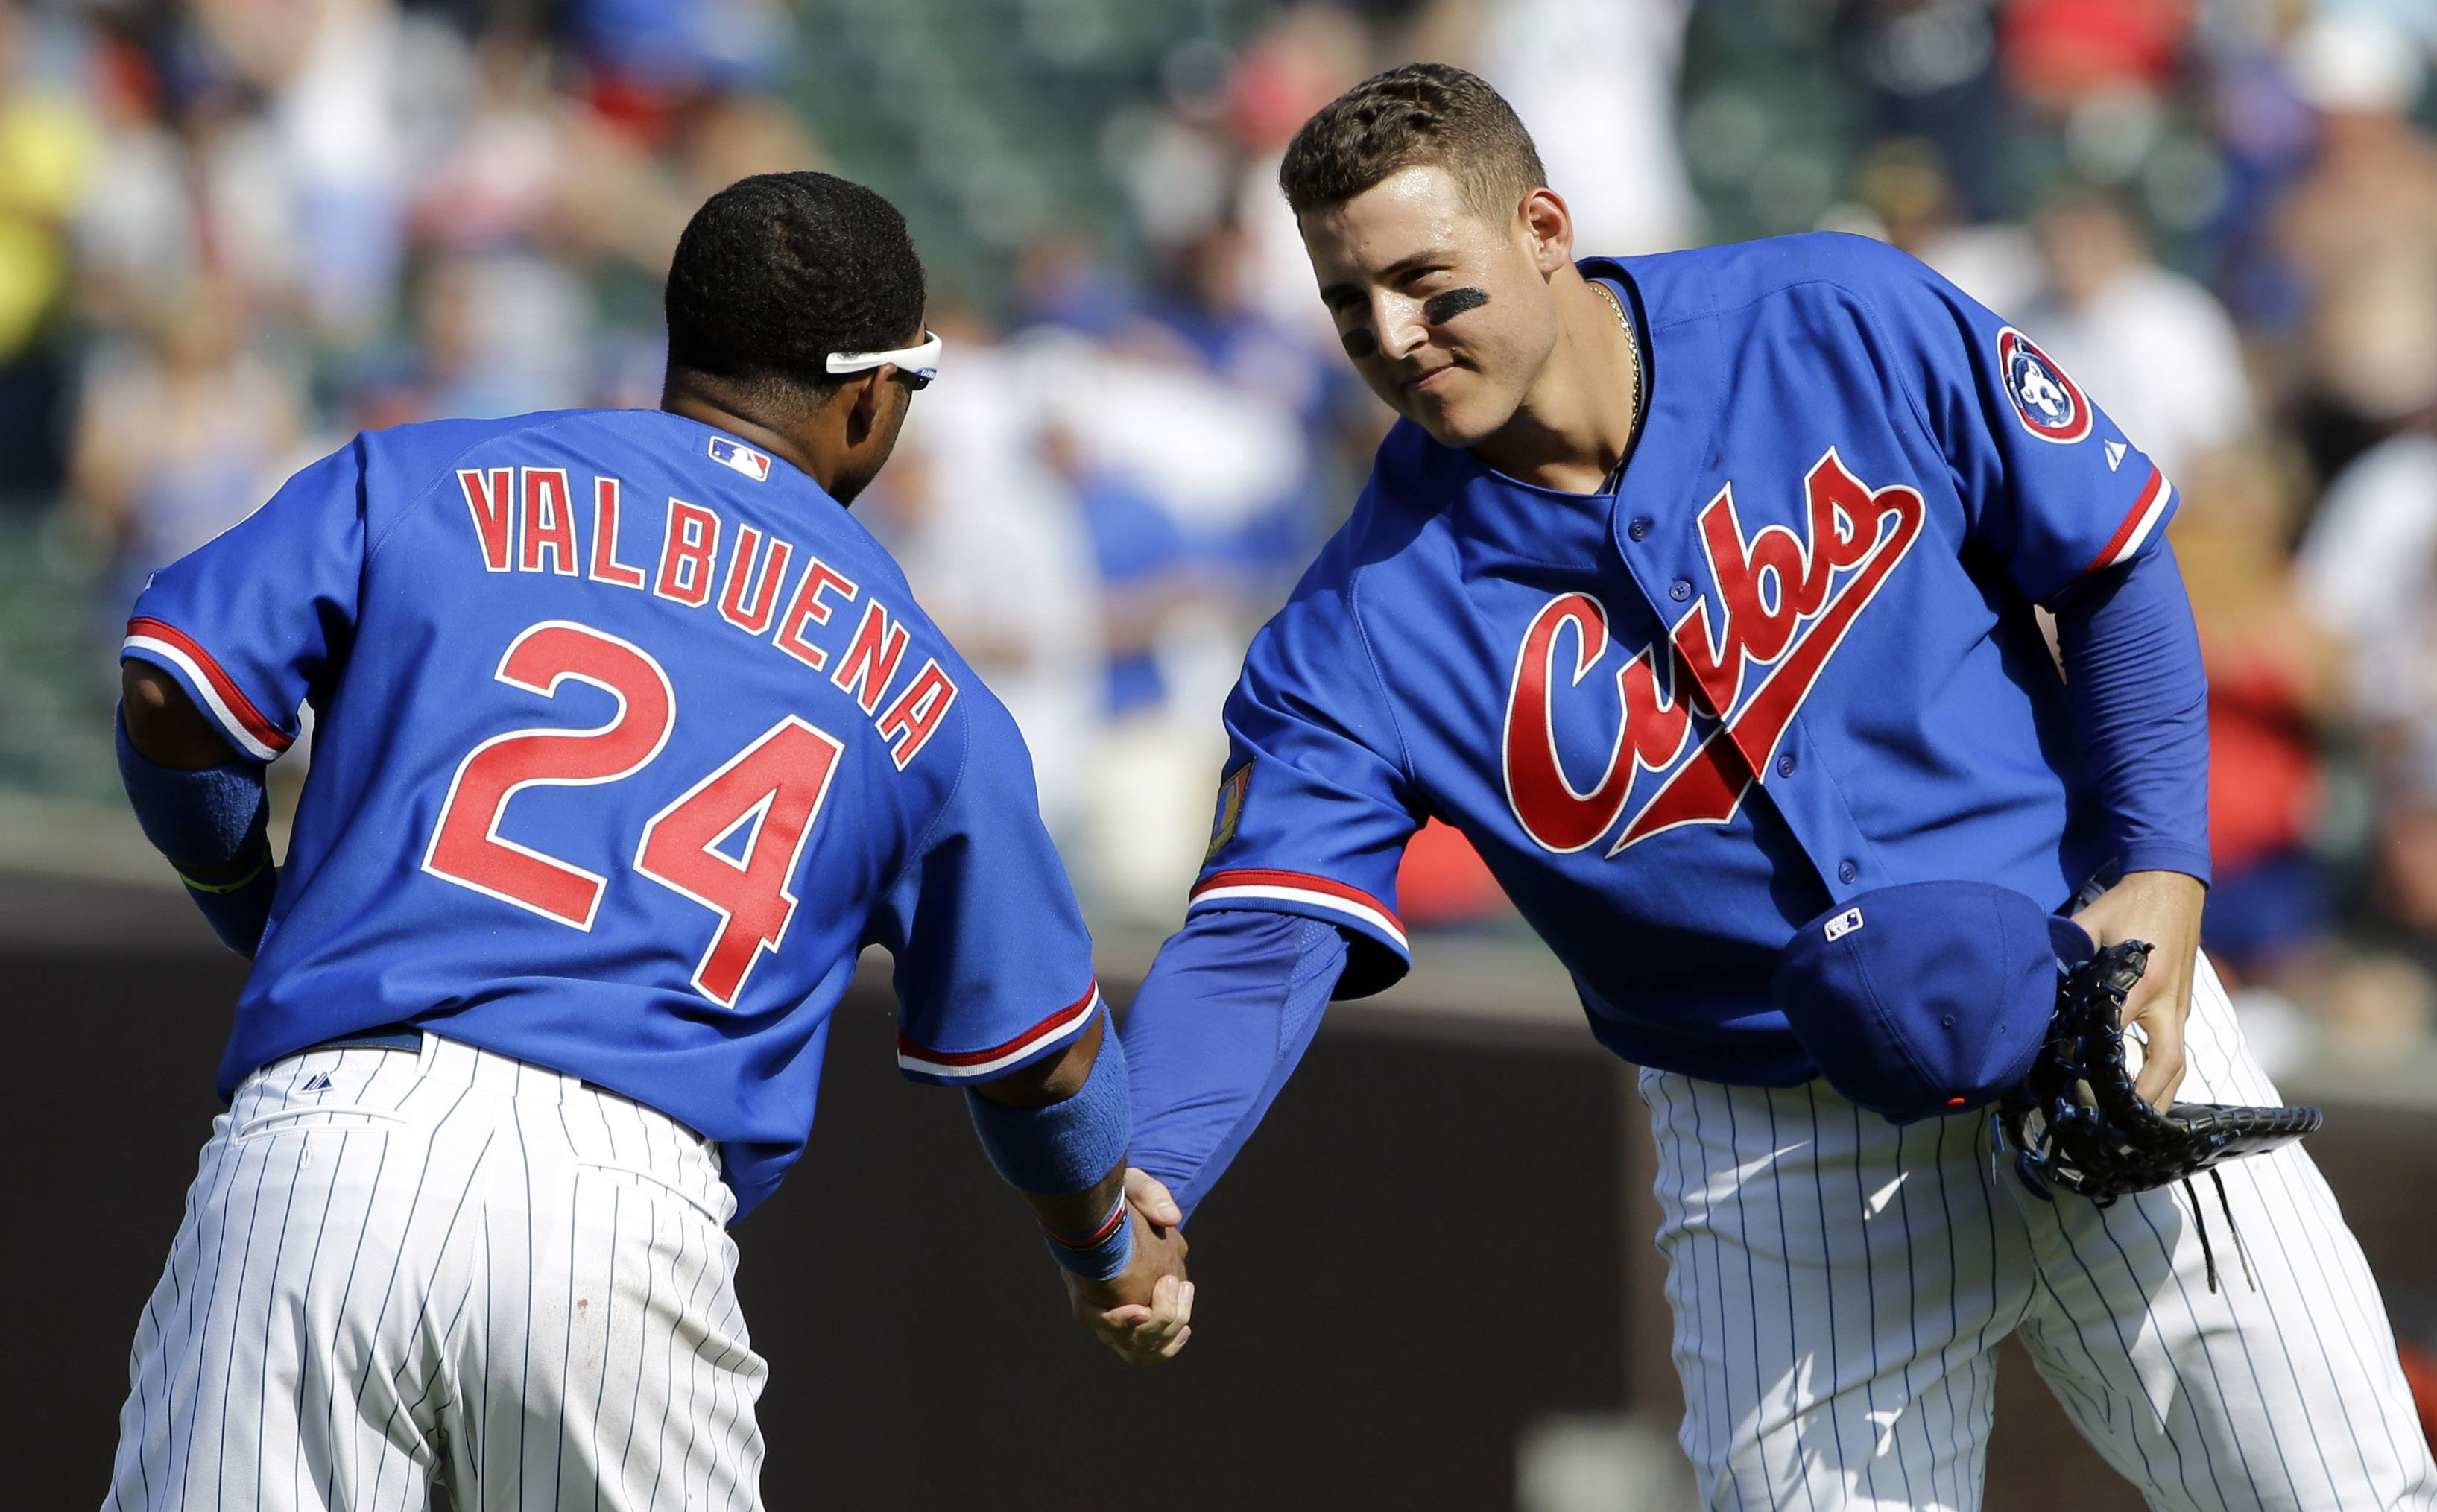 Anthony Rizzo celebrates with teammate Luis Valbuena after the Cubs defeated the first-place Baltimore Orioles 2-1 on Sunday to complete the weekend sweep.